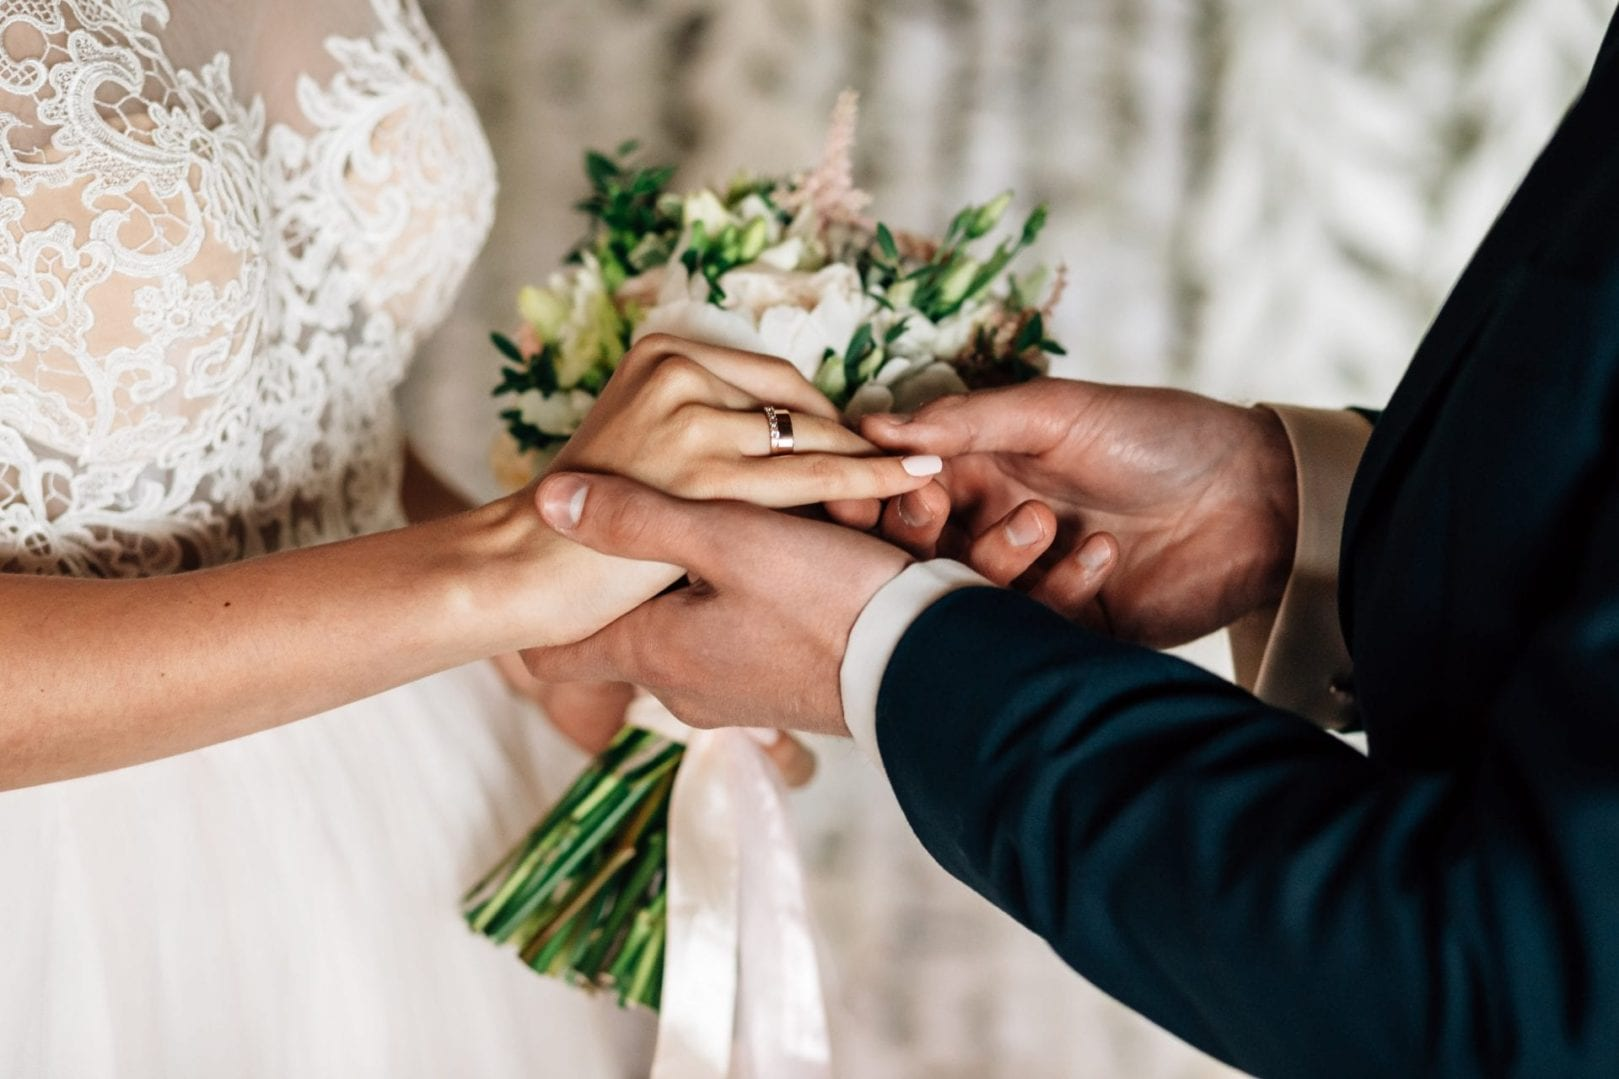 wedding ceremony close up of hand of man and woman exchanging wedding rings